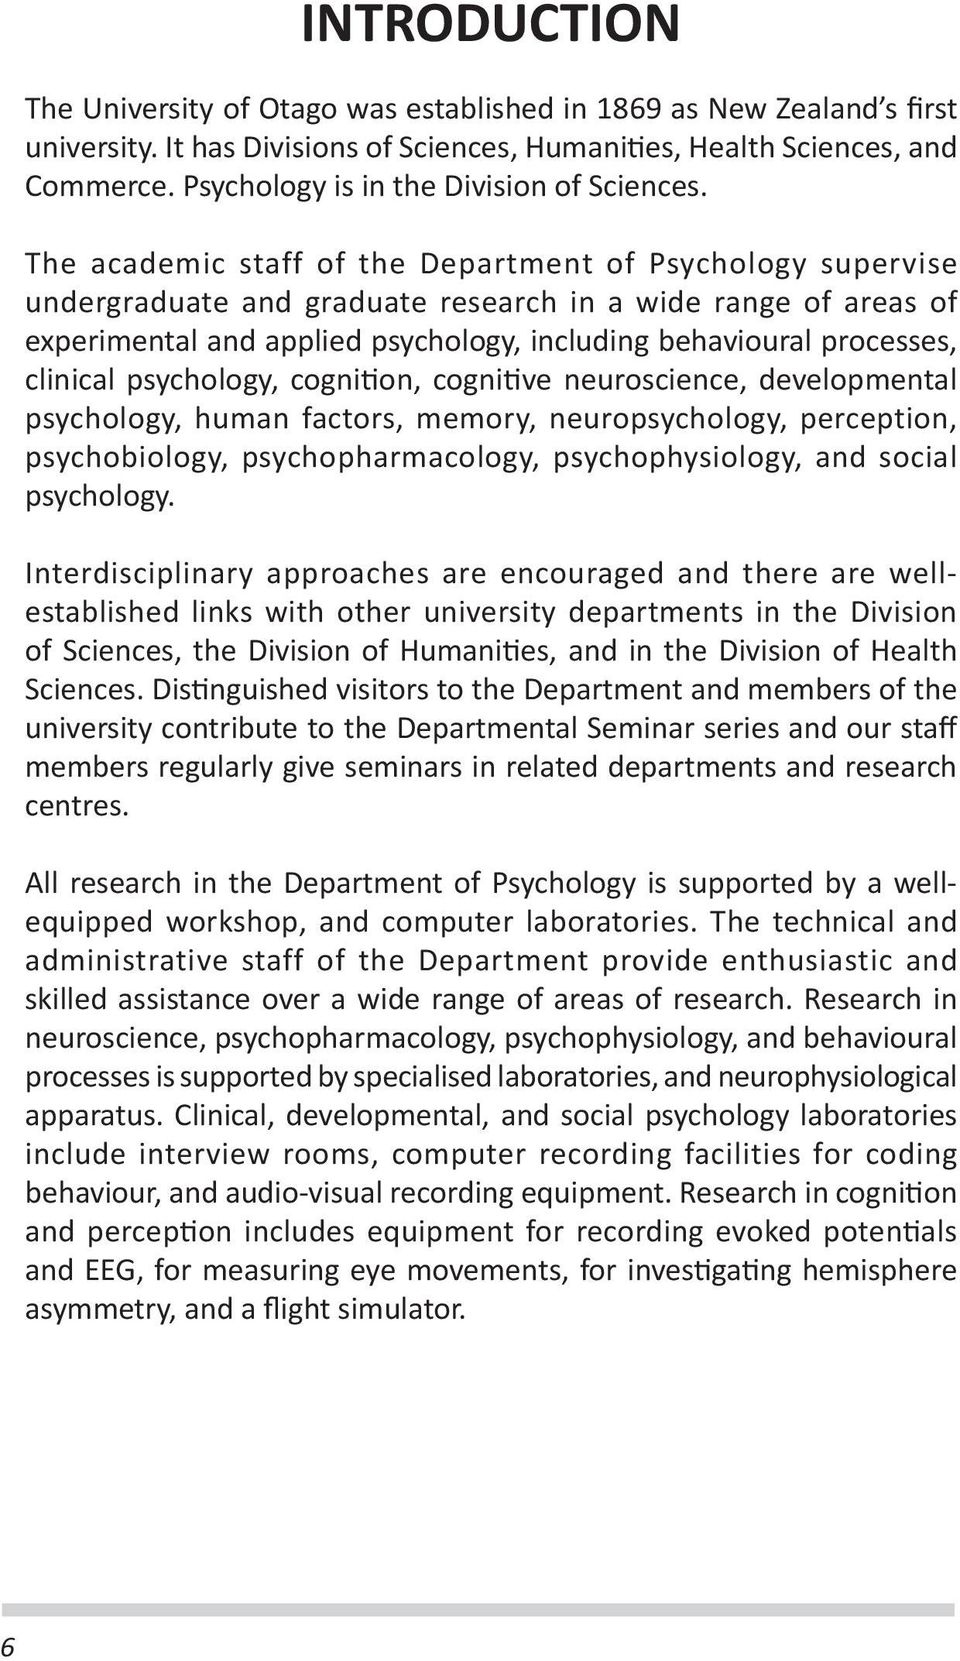 The academic staff of the Department of Psychology supervise undergraduate and graduate research in a wide range of areas of experimental and applied psychology, including behavioural processes,